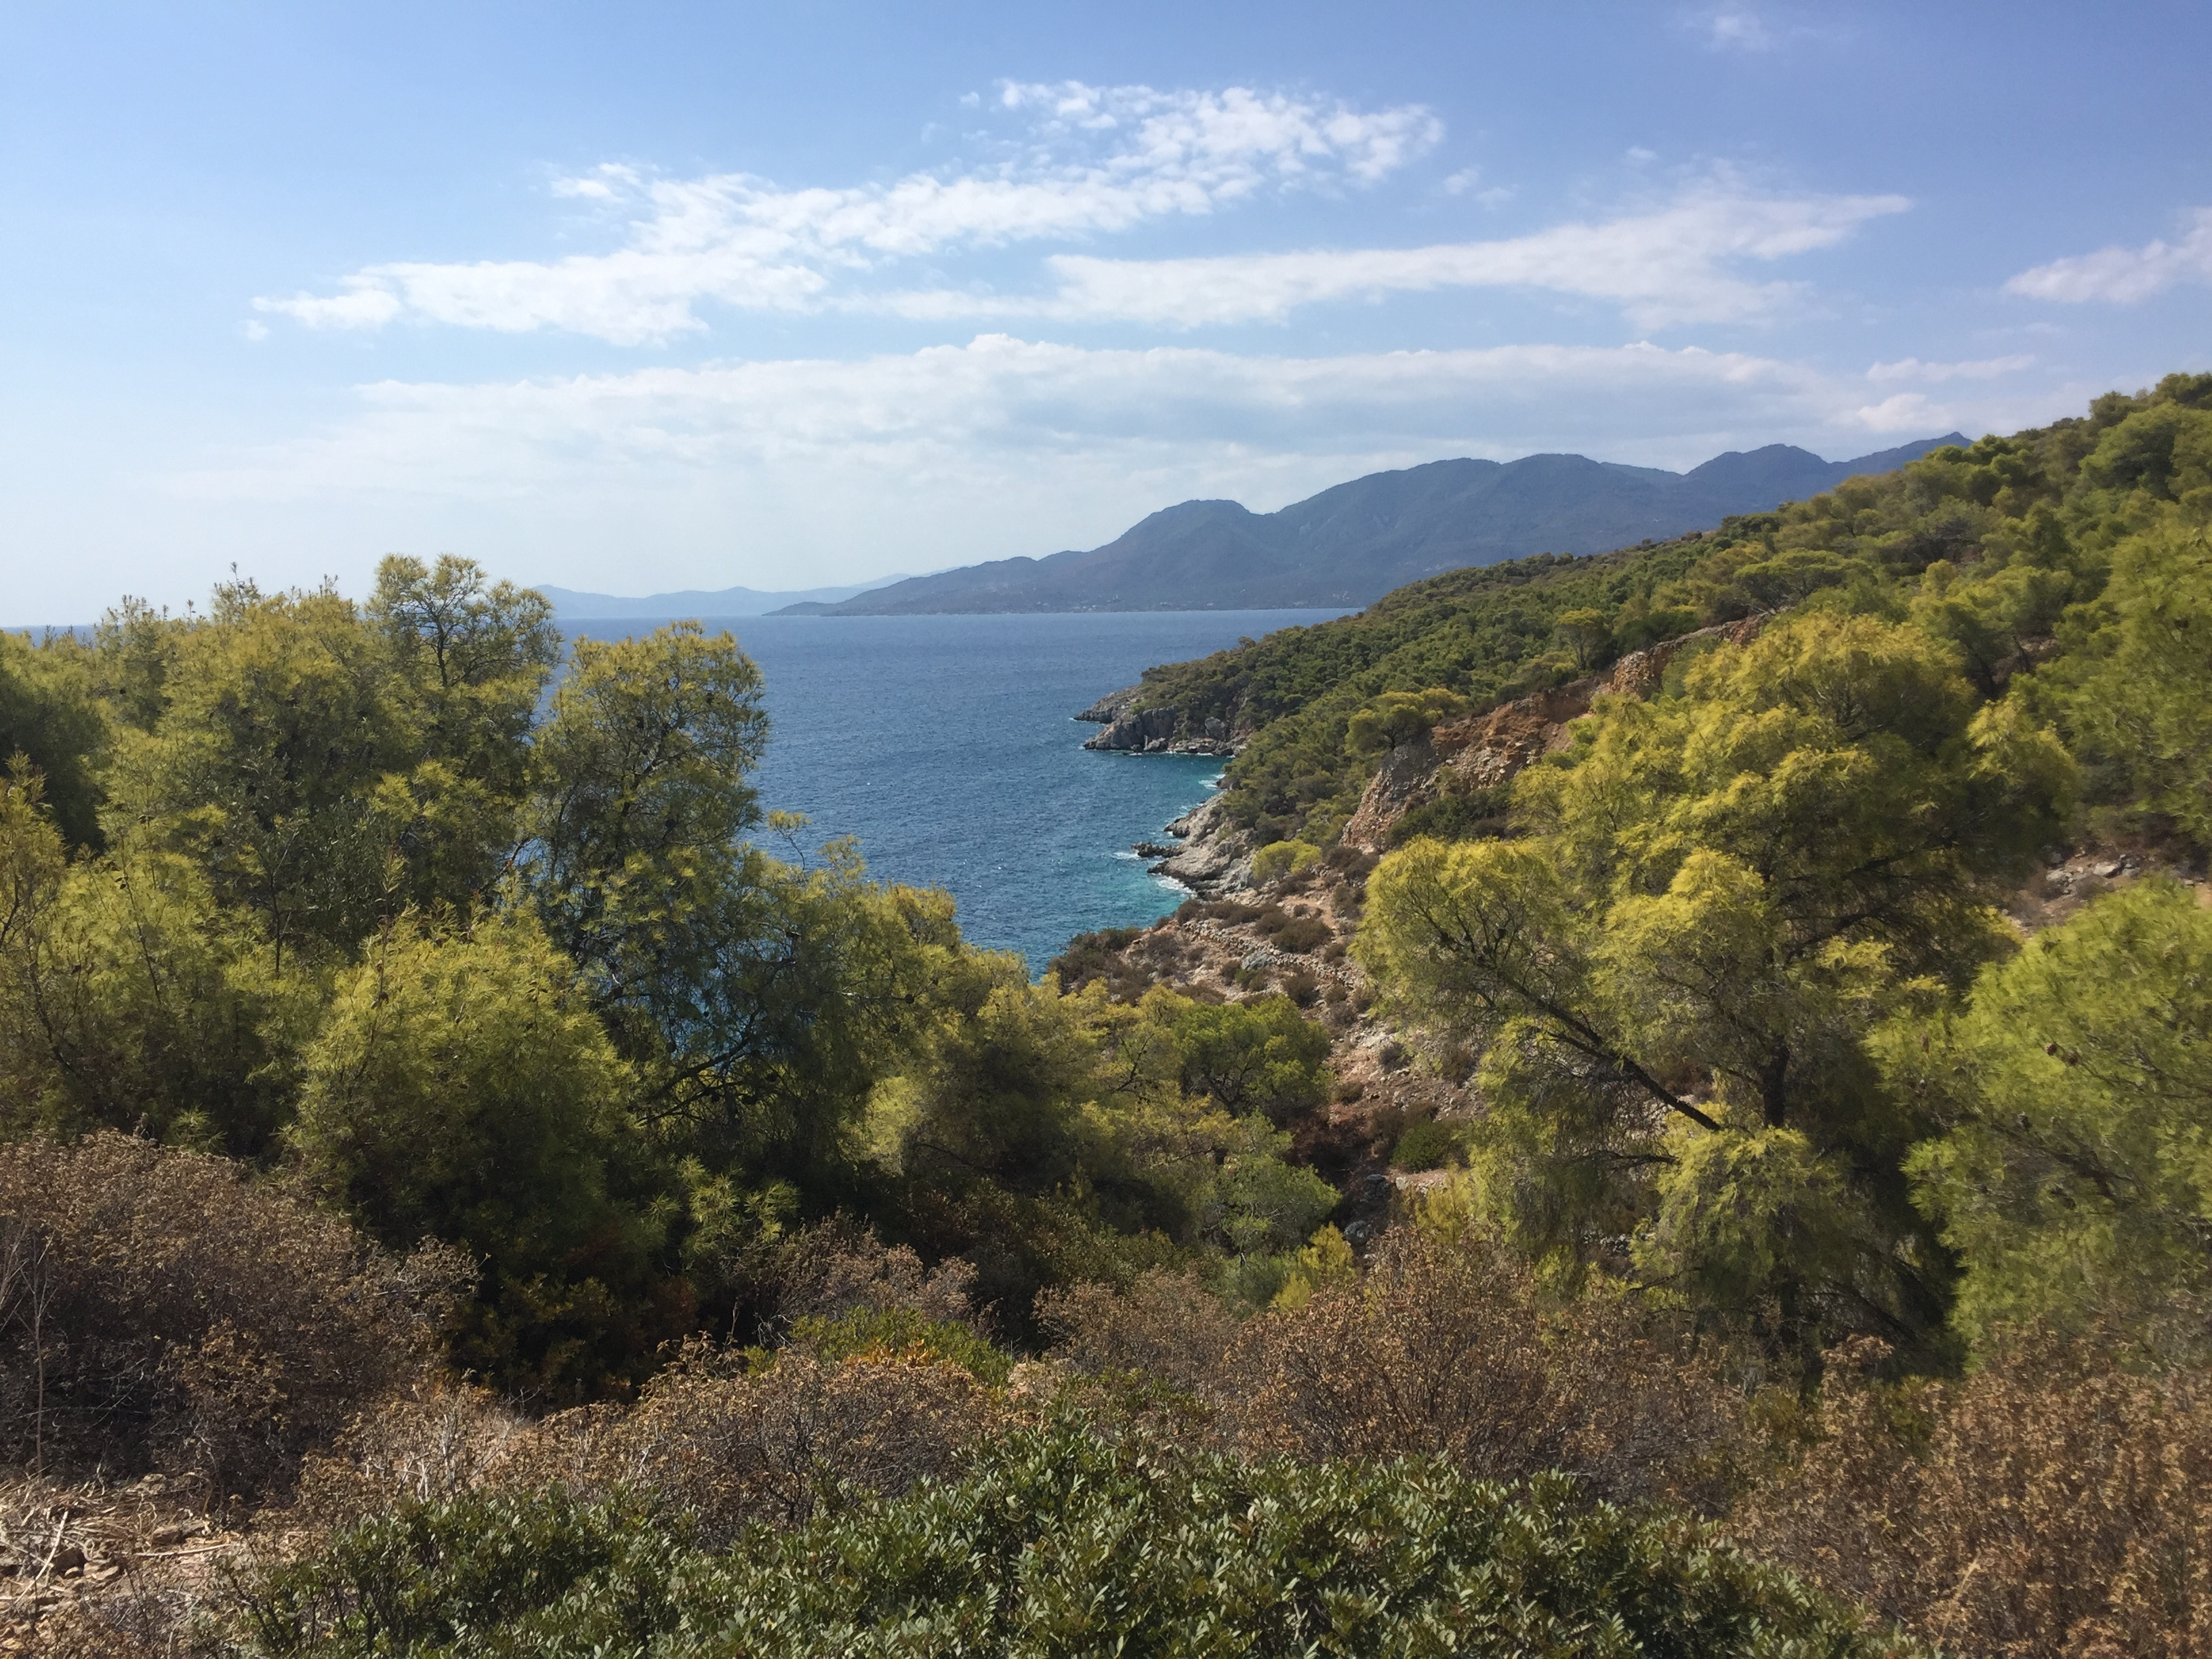 Random View in Greece. Get used to it, because it's that beautiful everywhere here.